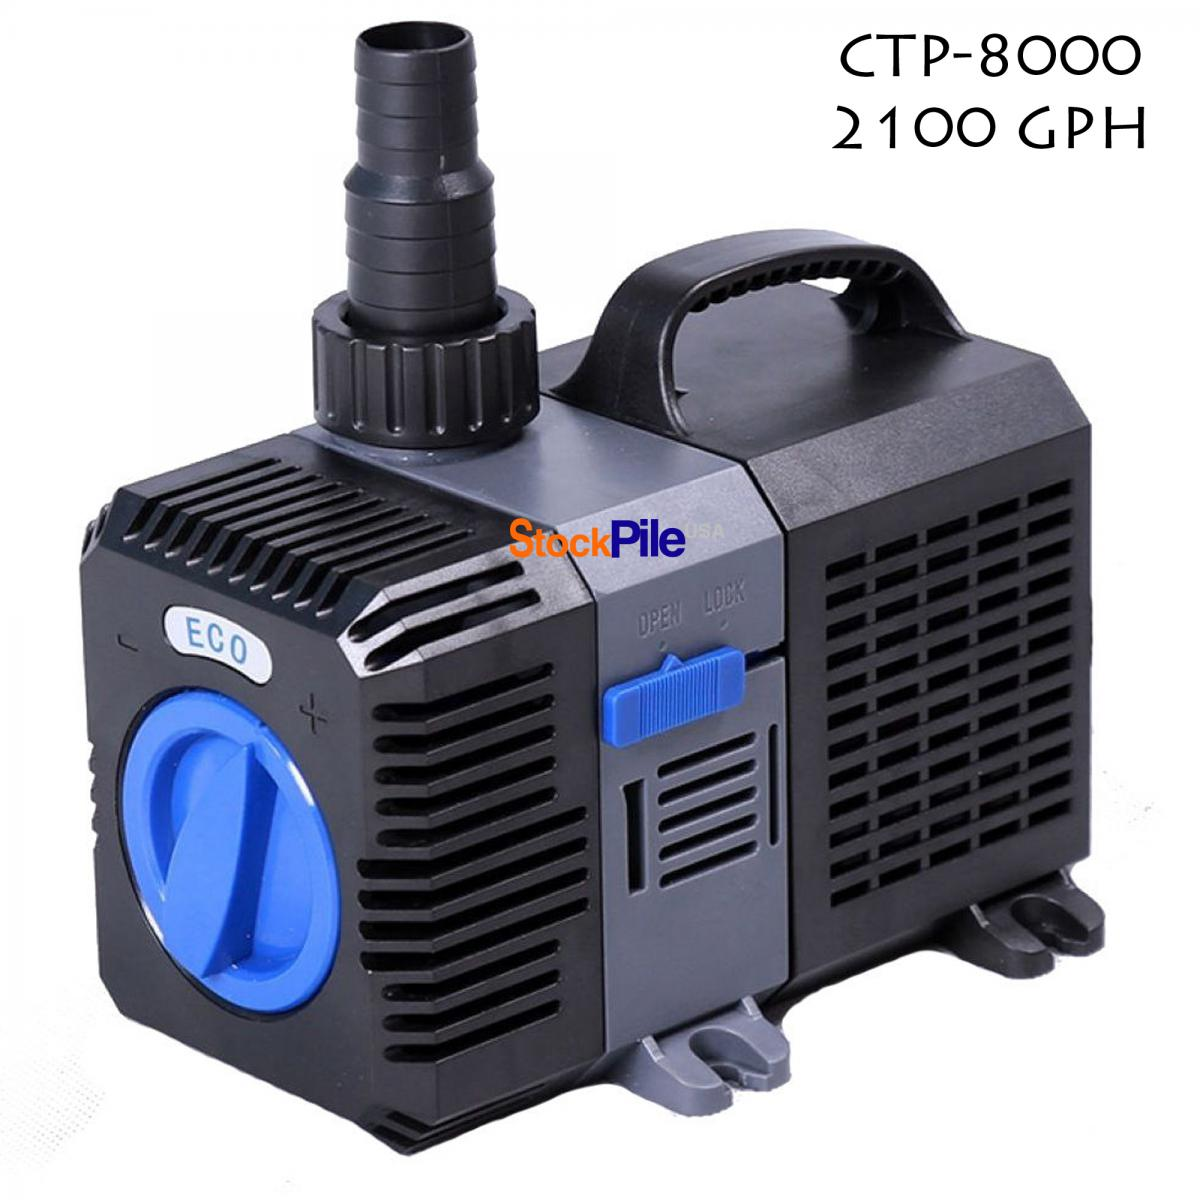 1200 4200 Gph Submersible Pond Pump Inline Fountain